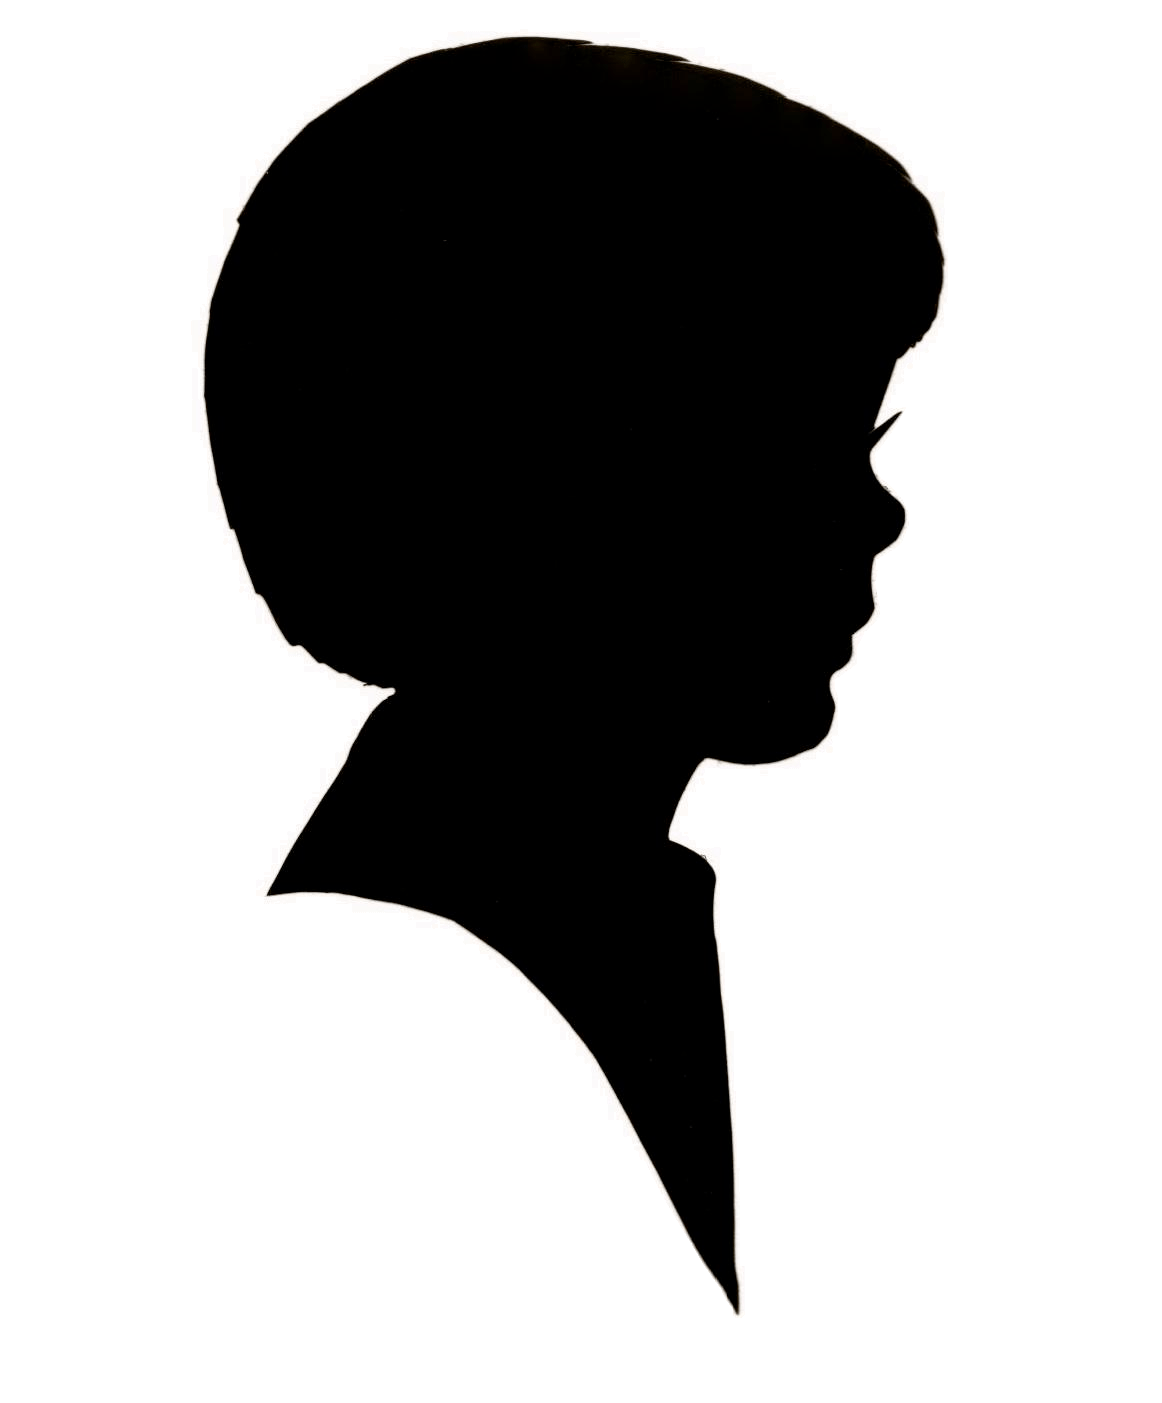 Welcome Silhouette With Mushroom Hairstyle